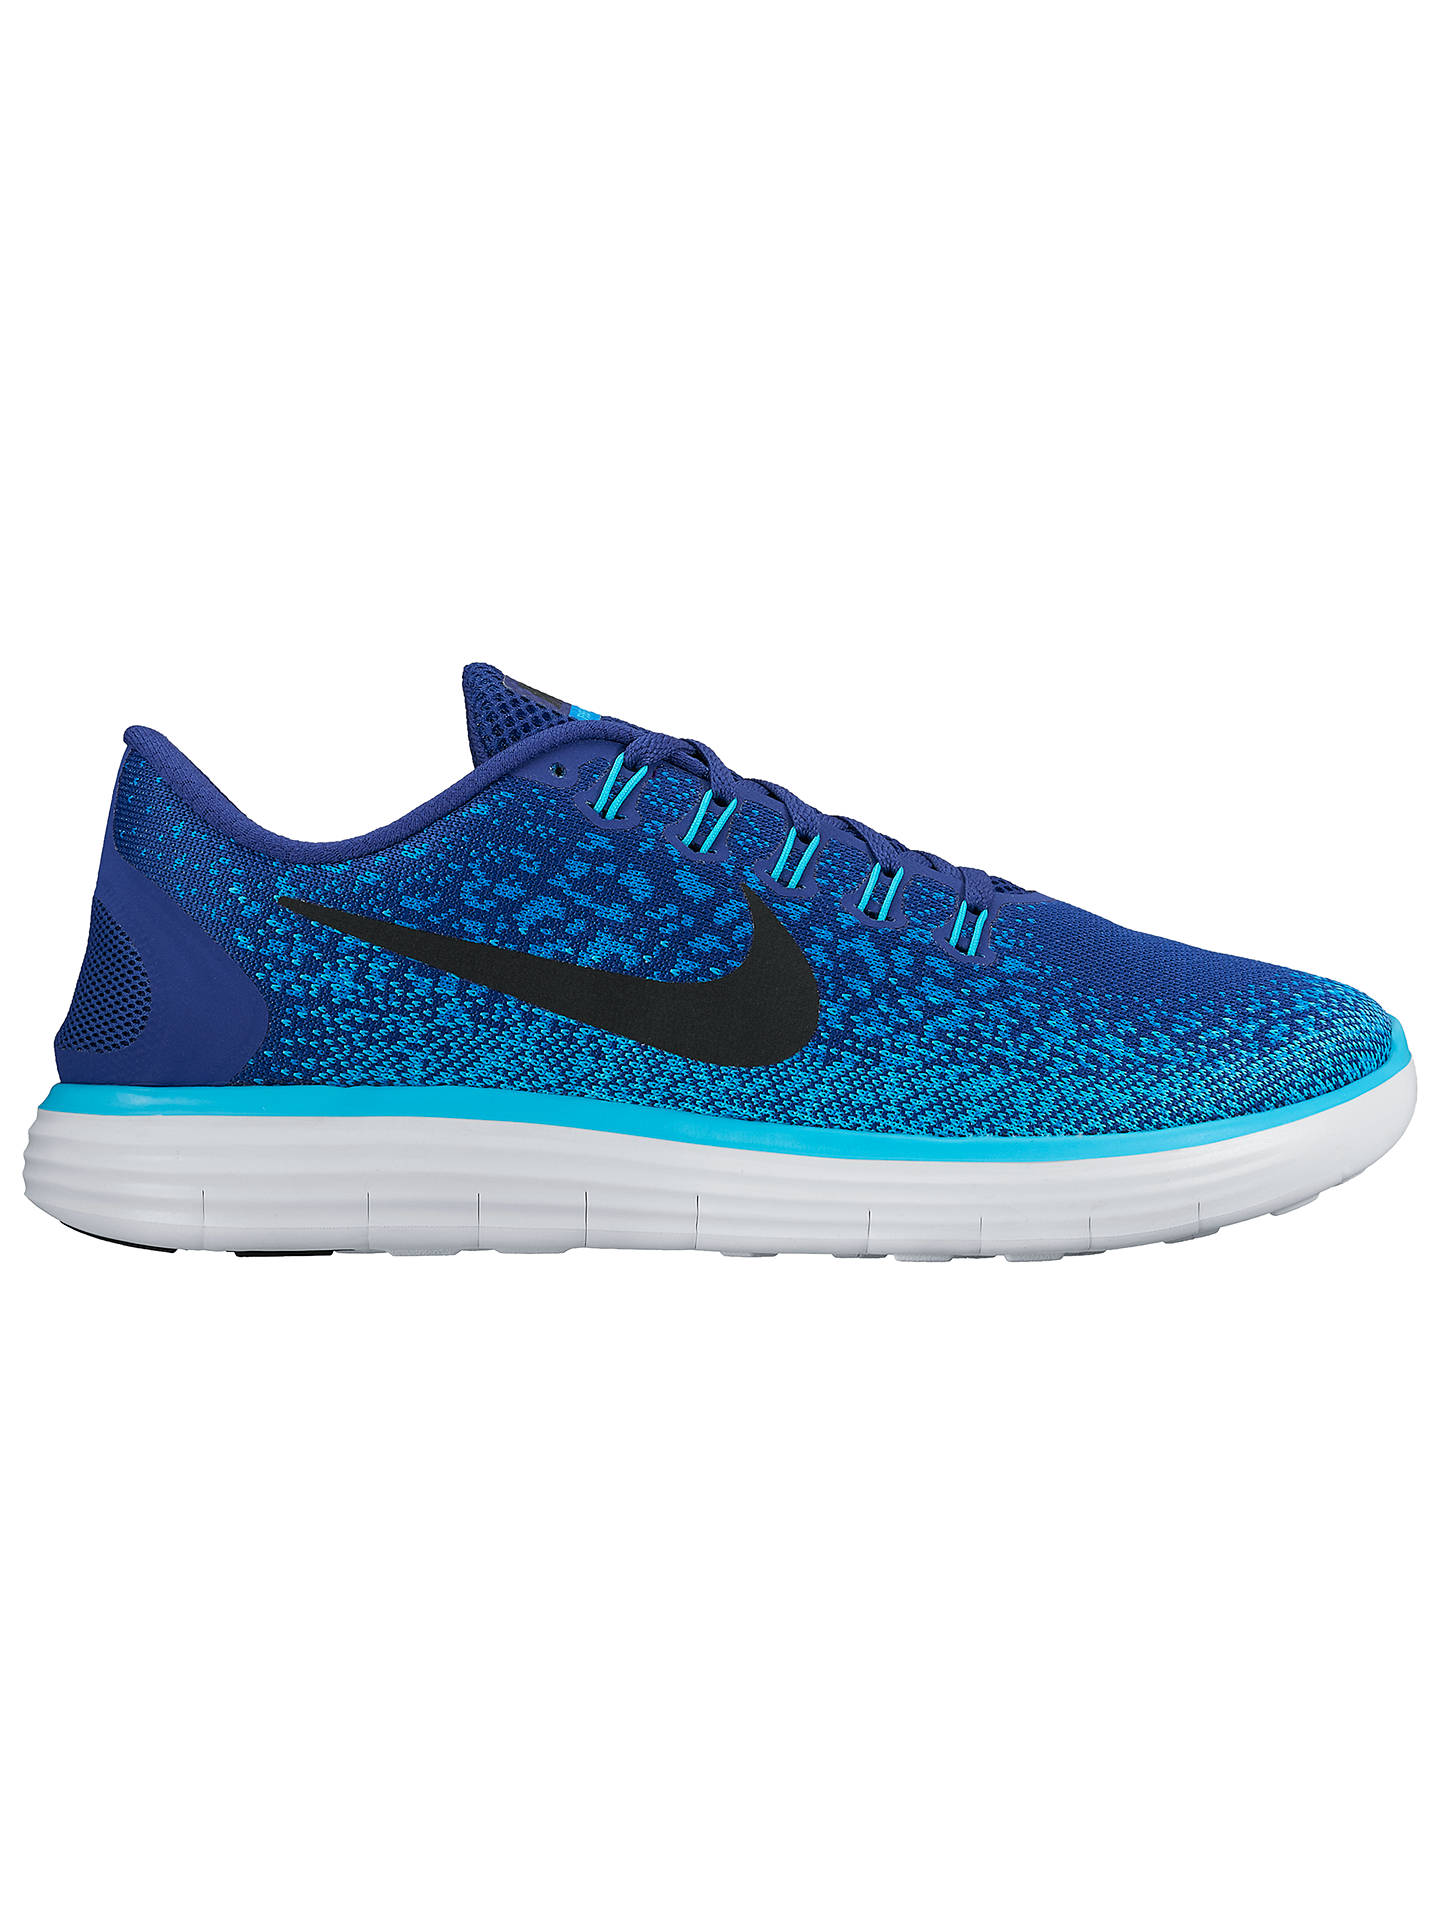 be2f433b0ebf3 Buy Nike Free RN Distance Men s Running Shoes